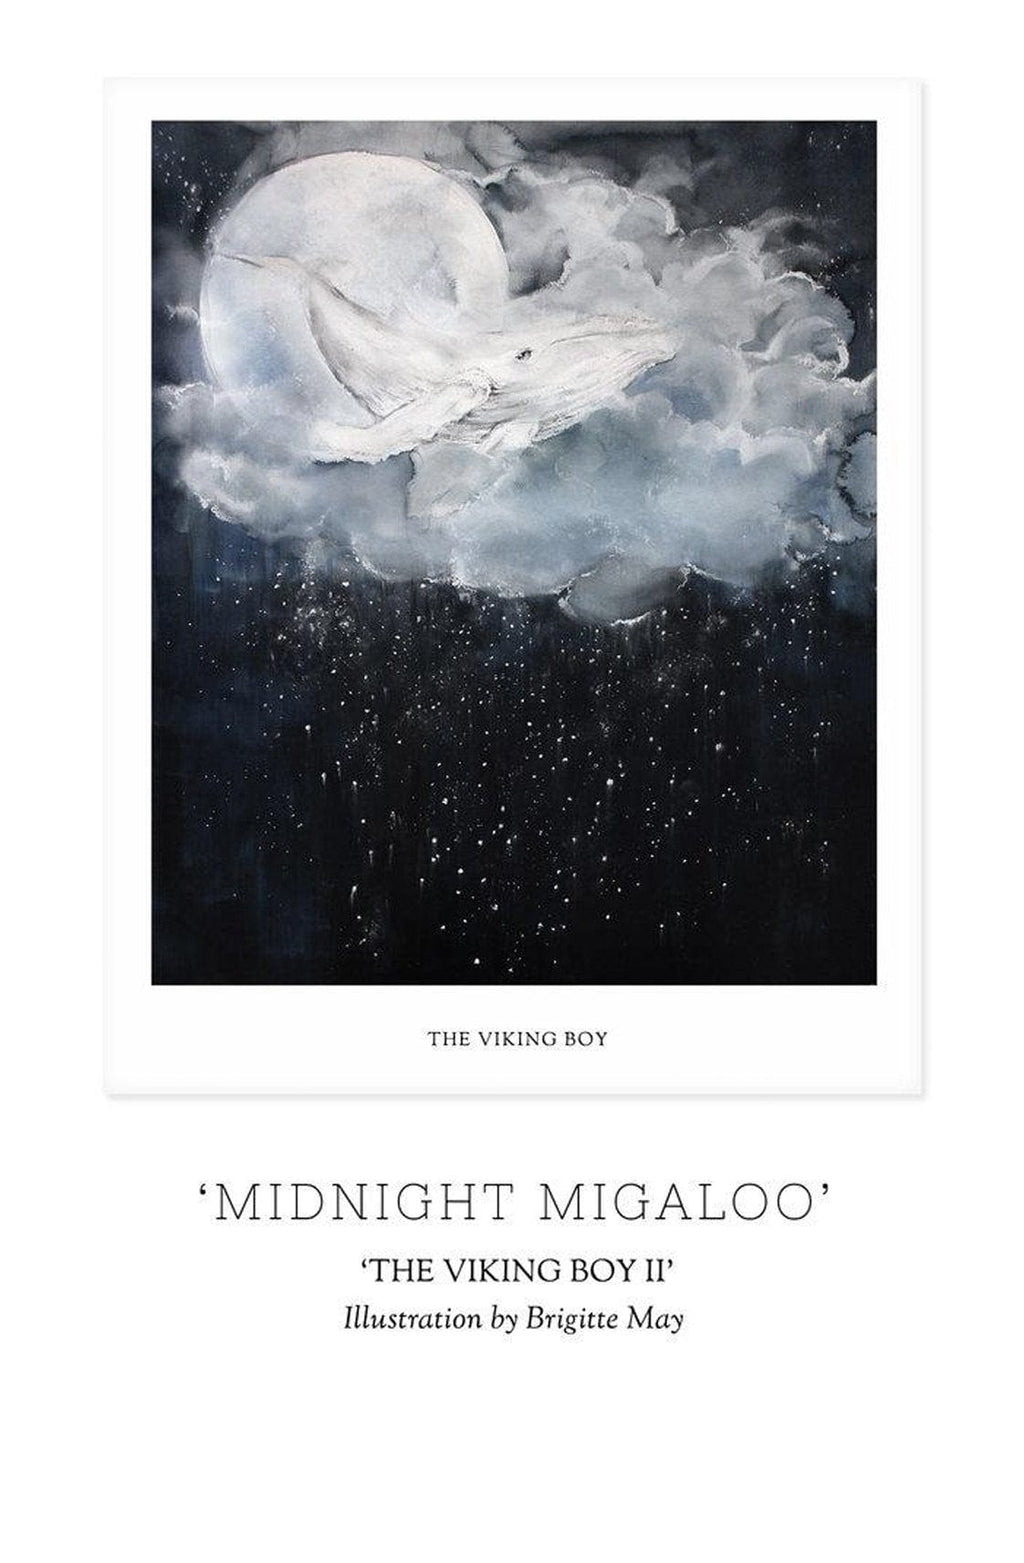 Unclebearskin Productions, THE VIKING BOY, CHAPTER II - 'MOONLIGHT MIGALOO' Print - Hello Little Birdie